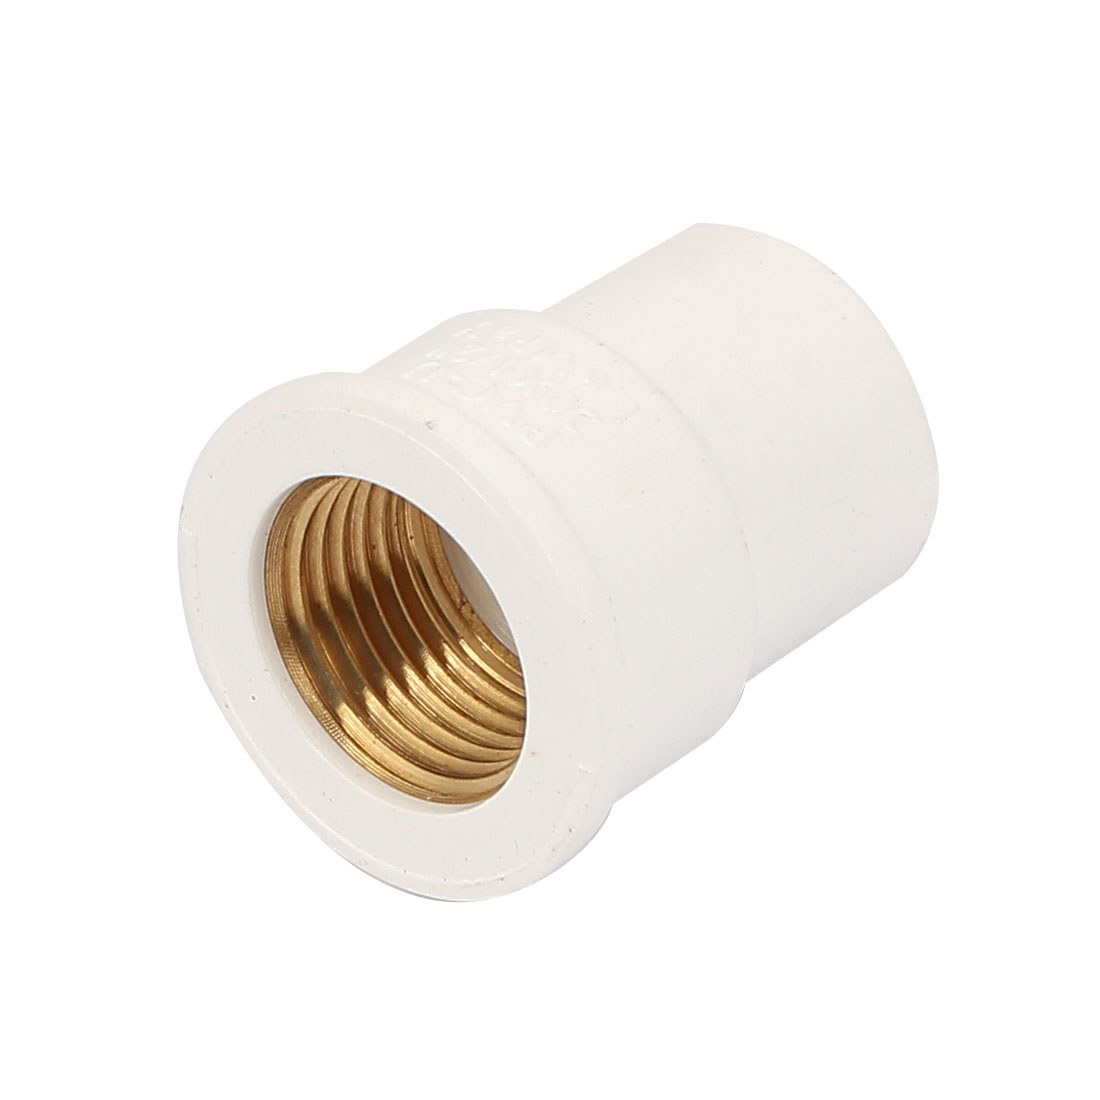 1/2BSP Female Thread PVC Straight Pipe Fitting Coupling Adapter Connector